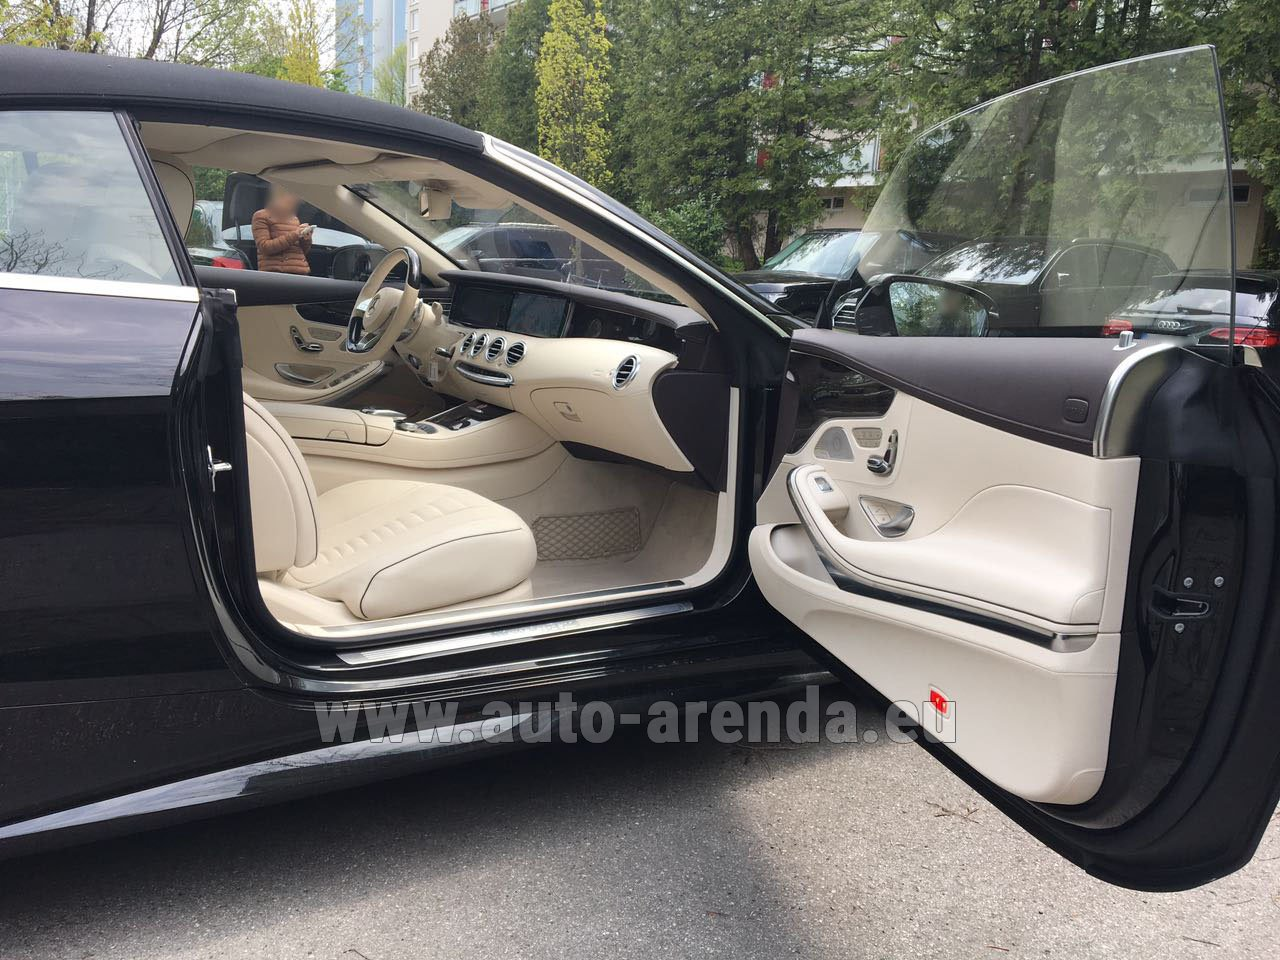 Spain mercedes benz s class s500 cabriolet rental for Mercedes benz rental prices